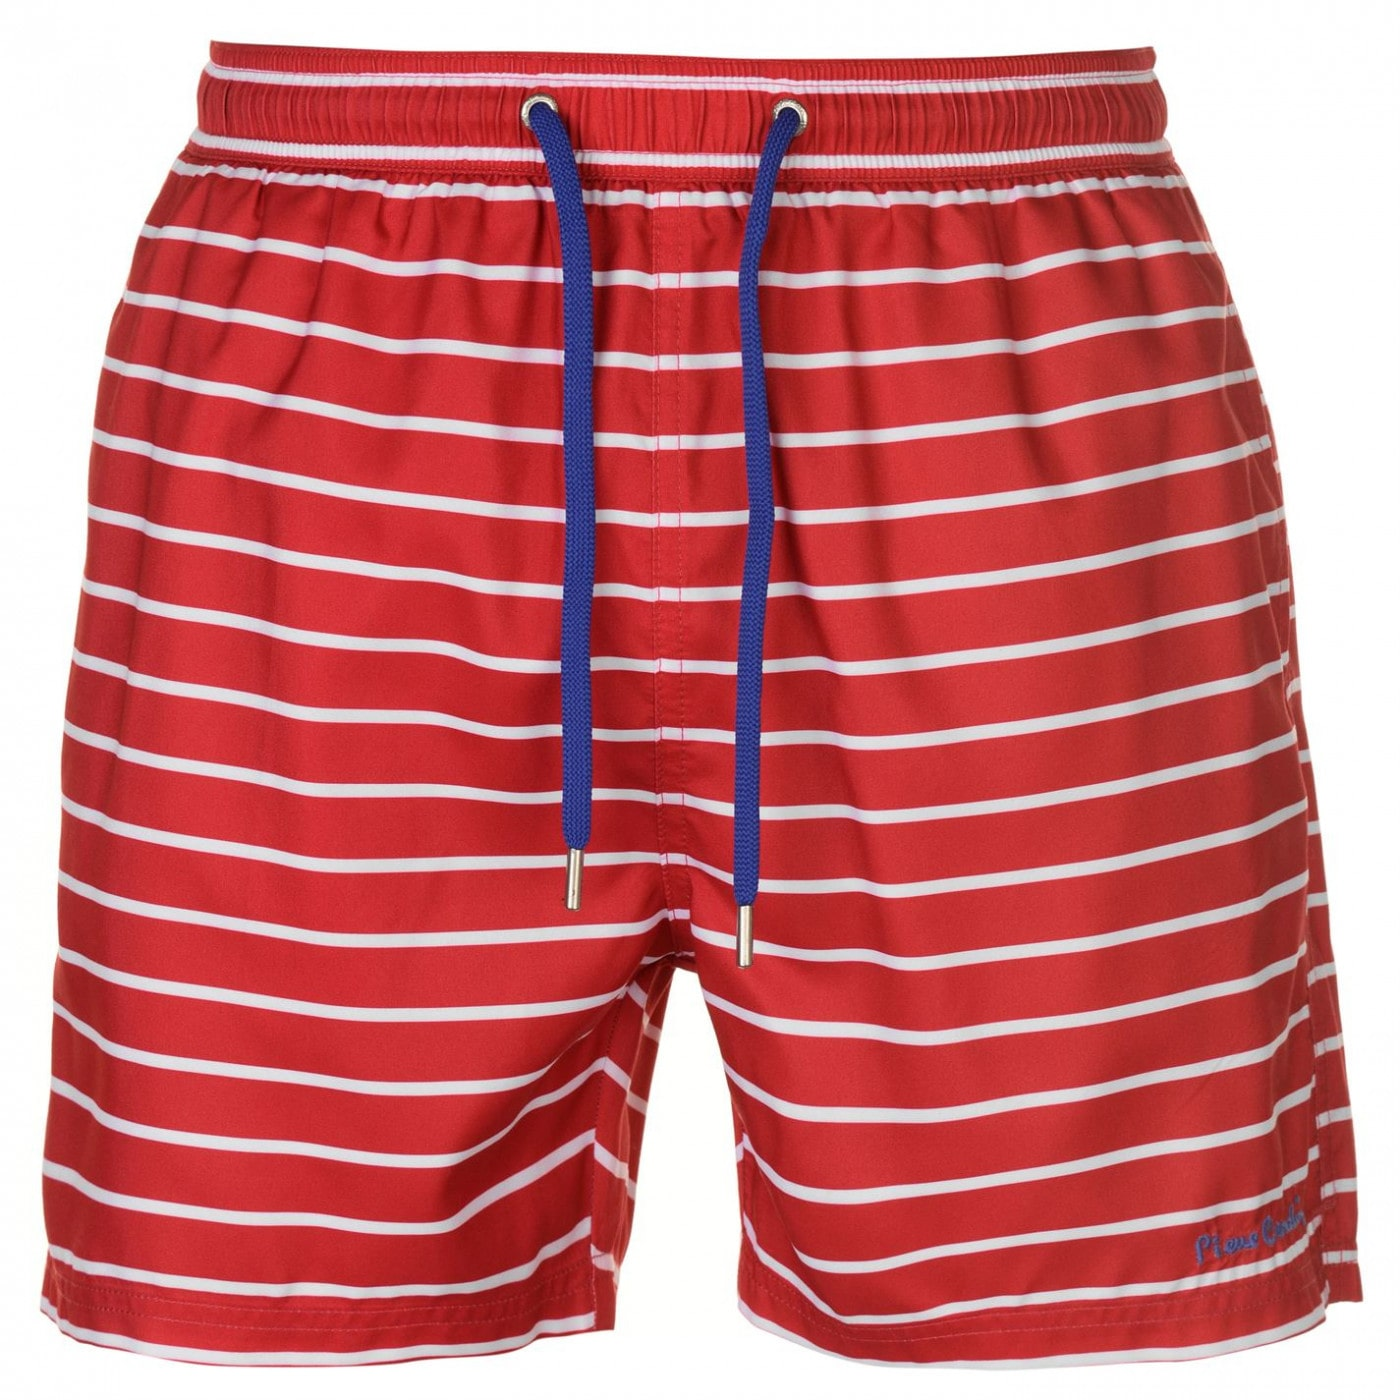 Pierre Cardin Stripe Swimshorts Mens